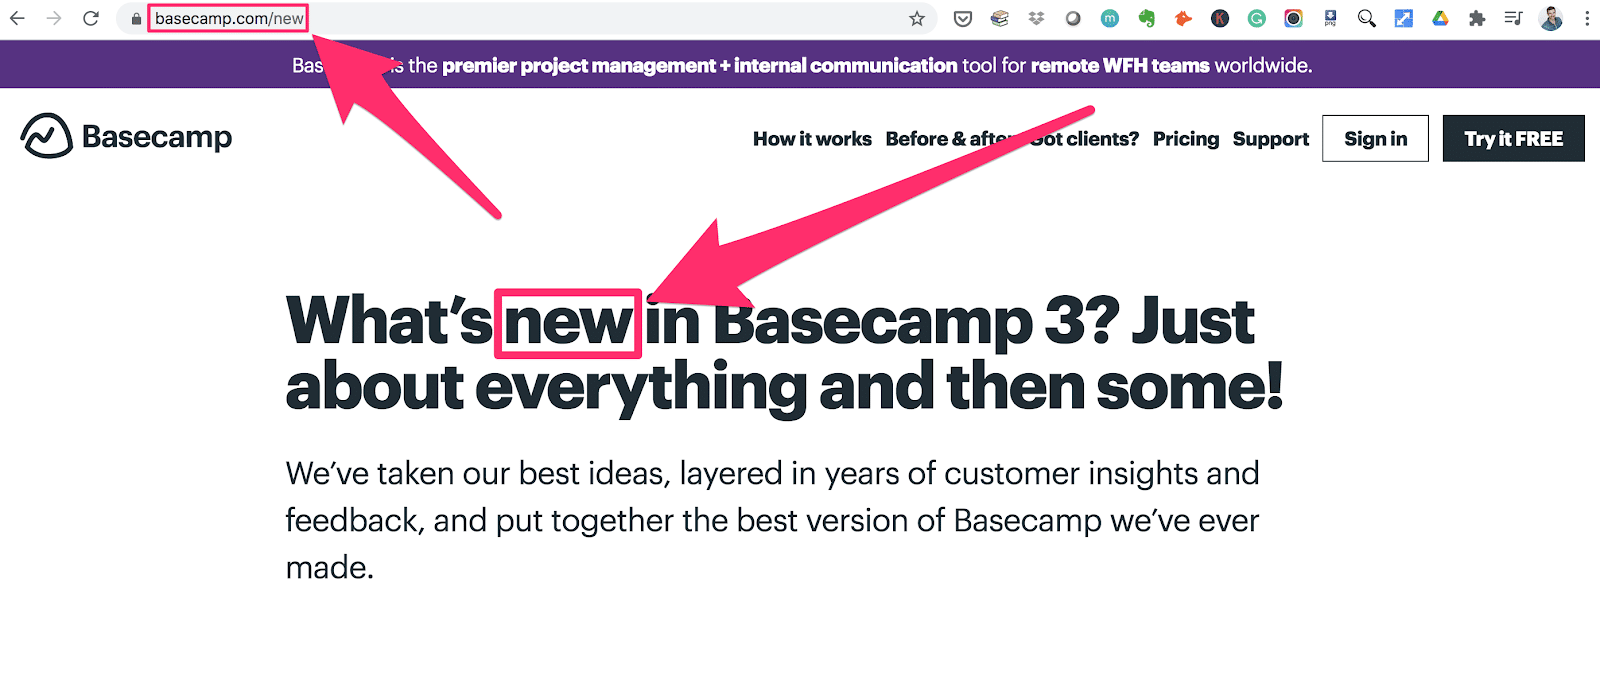 basecamp has a products page with the url slug new